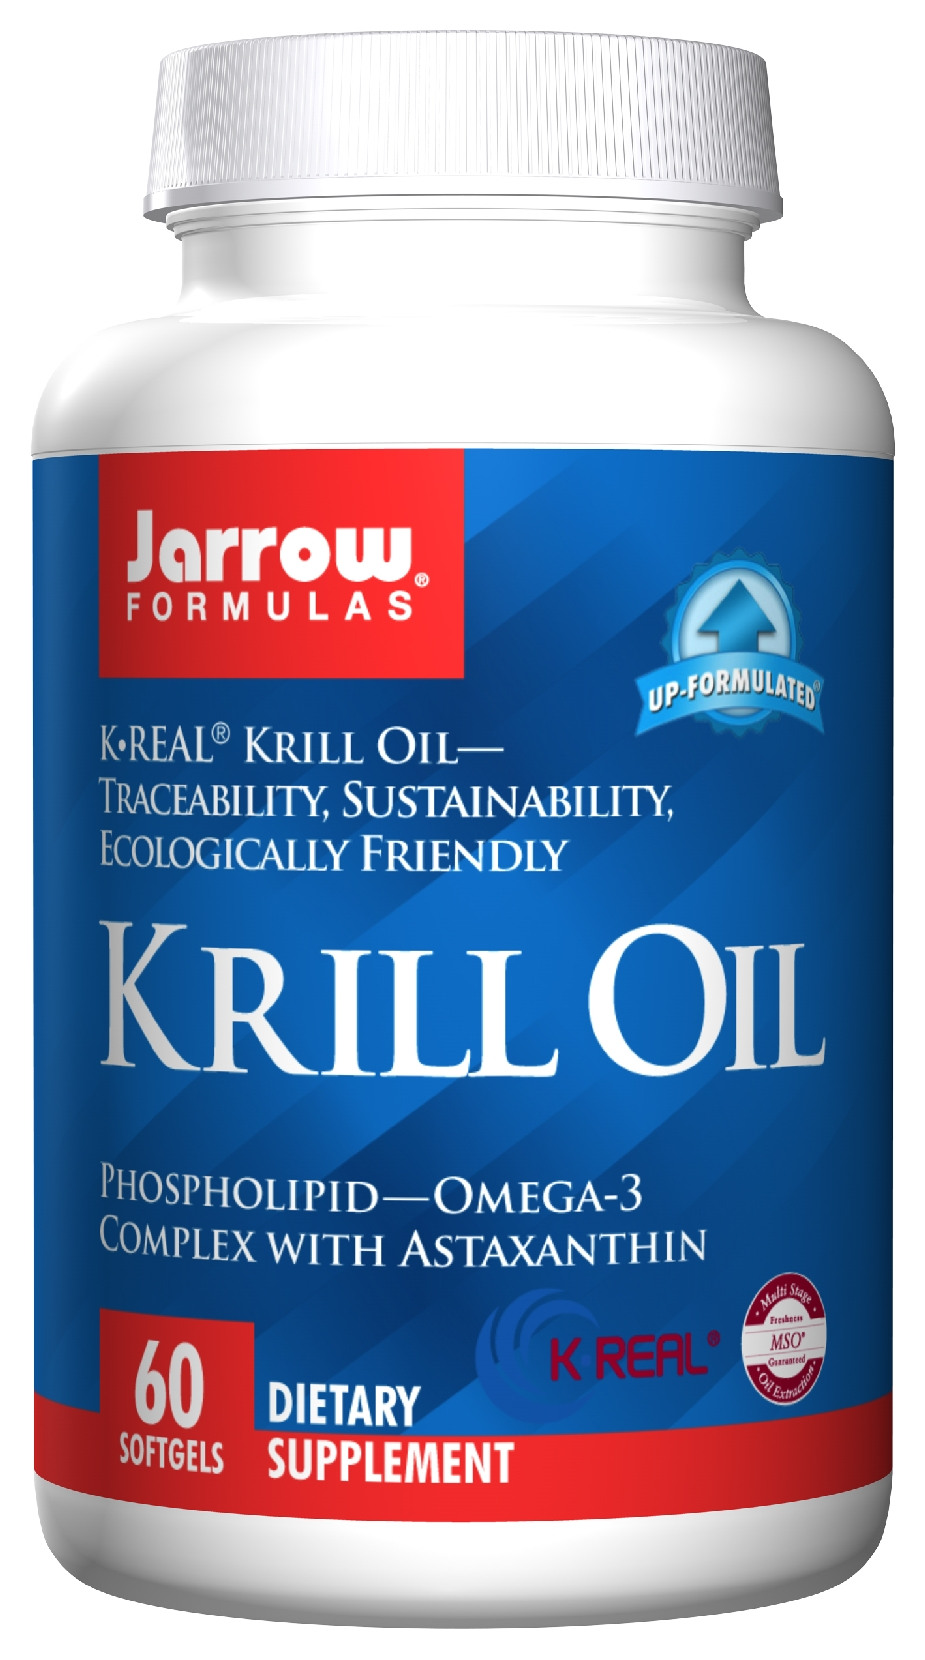 Krill Oil 60 sgels by Jarrow Formulas